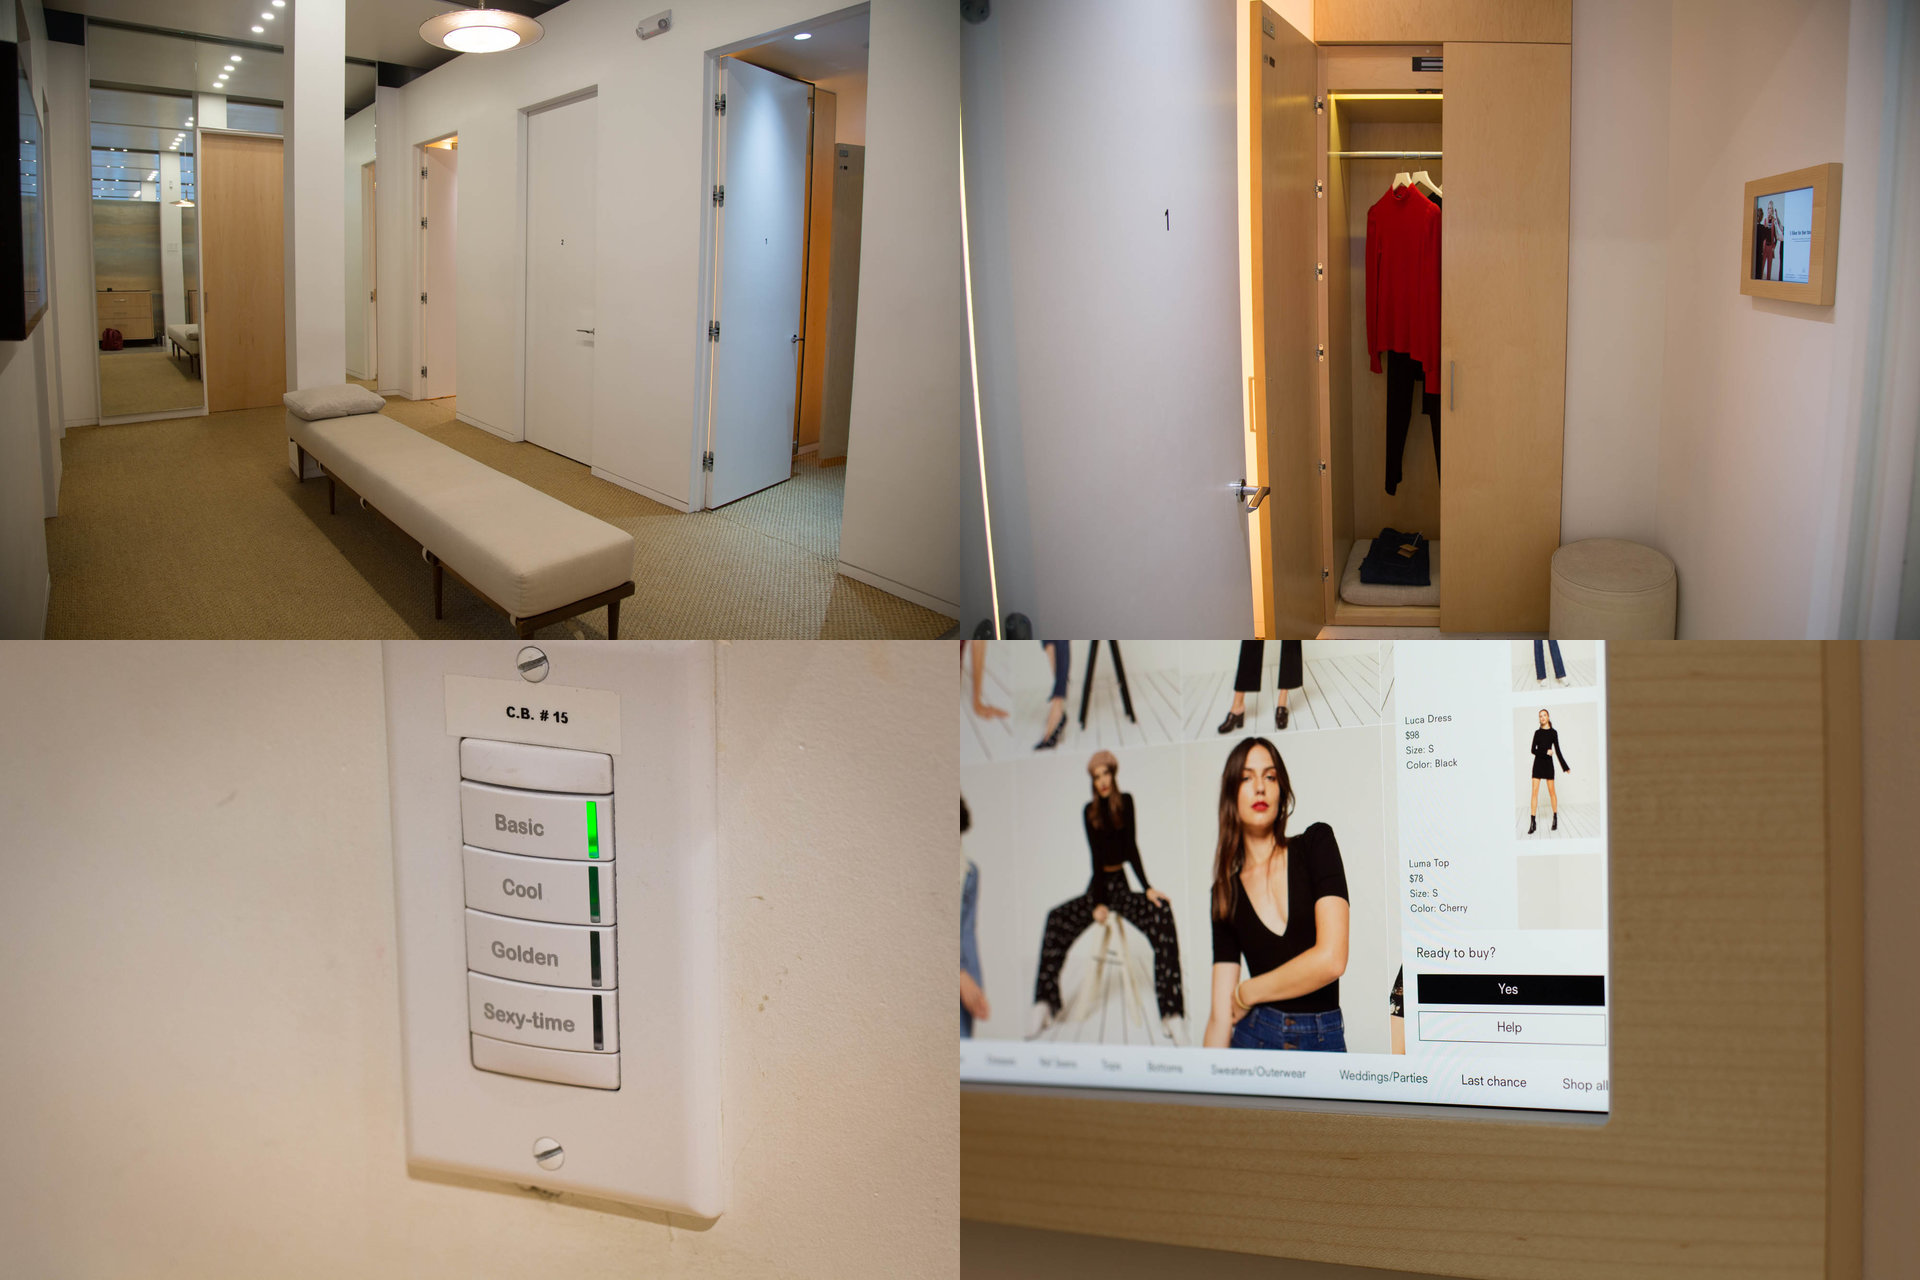 The interior and exterior of Reformation store dressing rooms, including lighting choices and purchasing interface